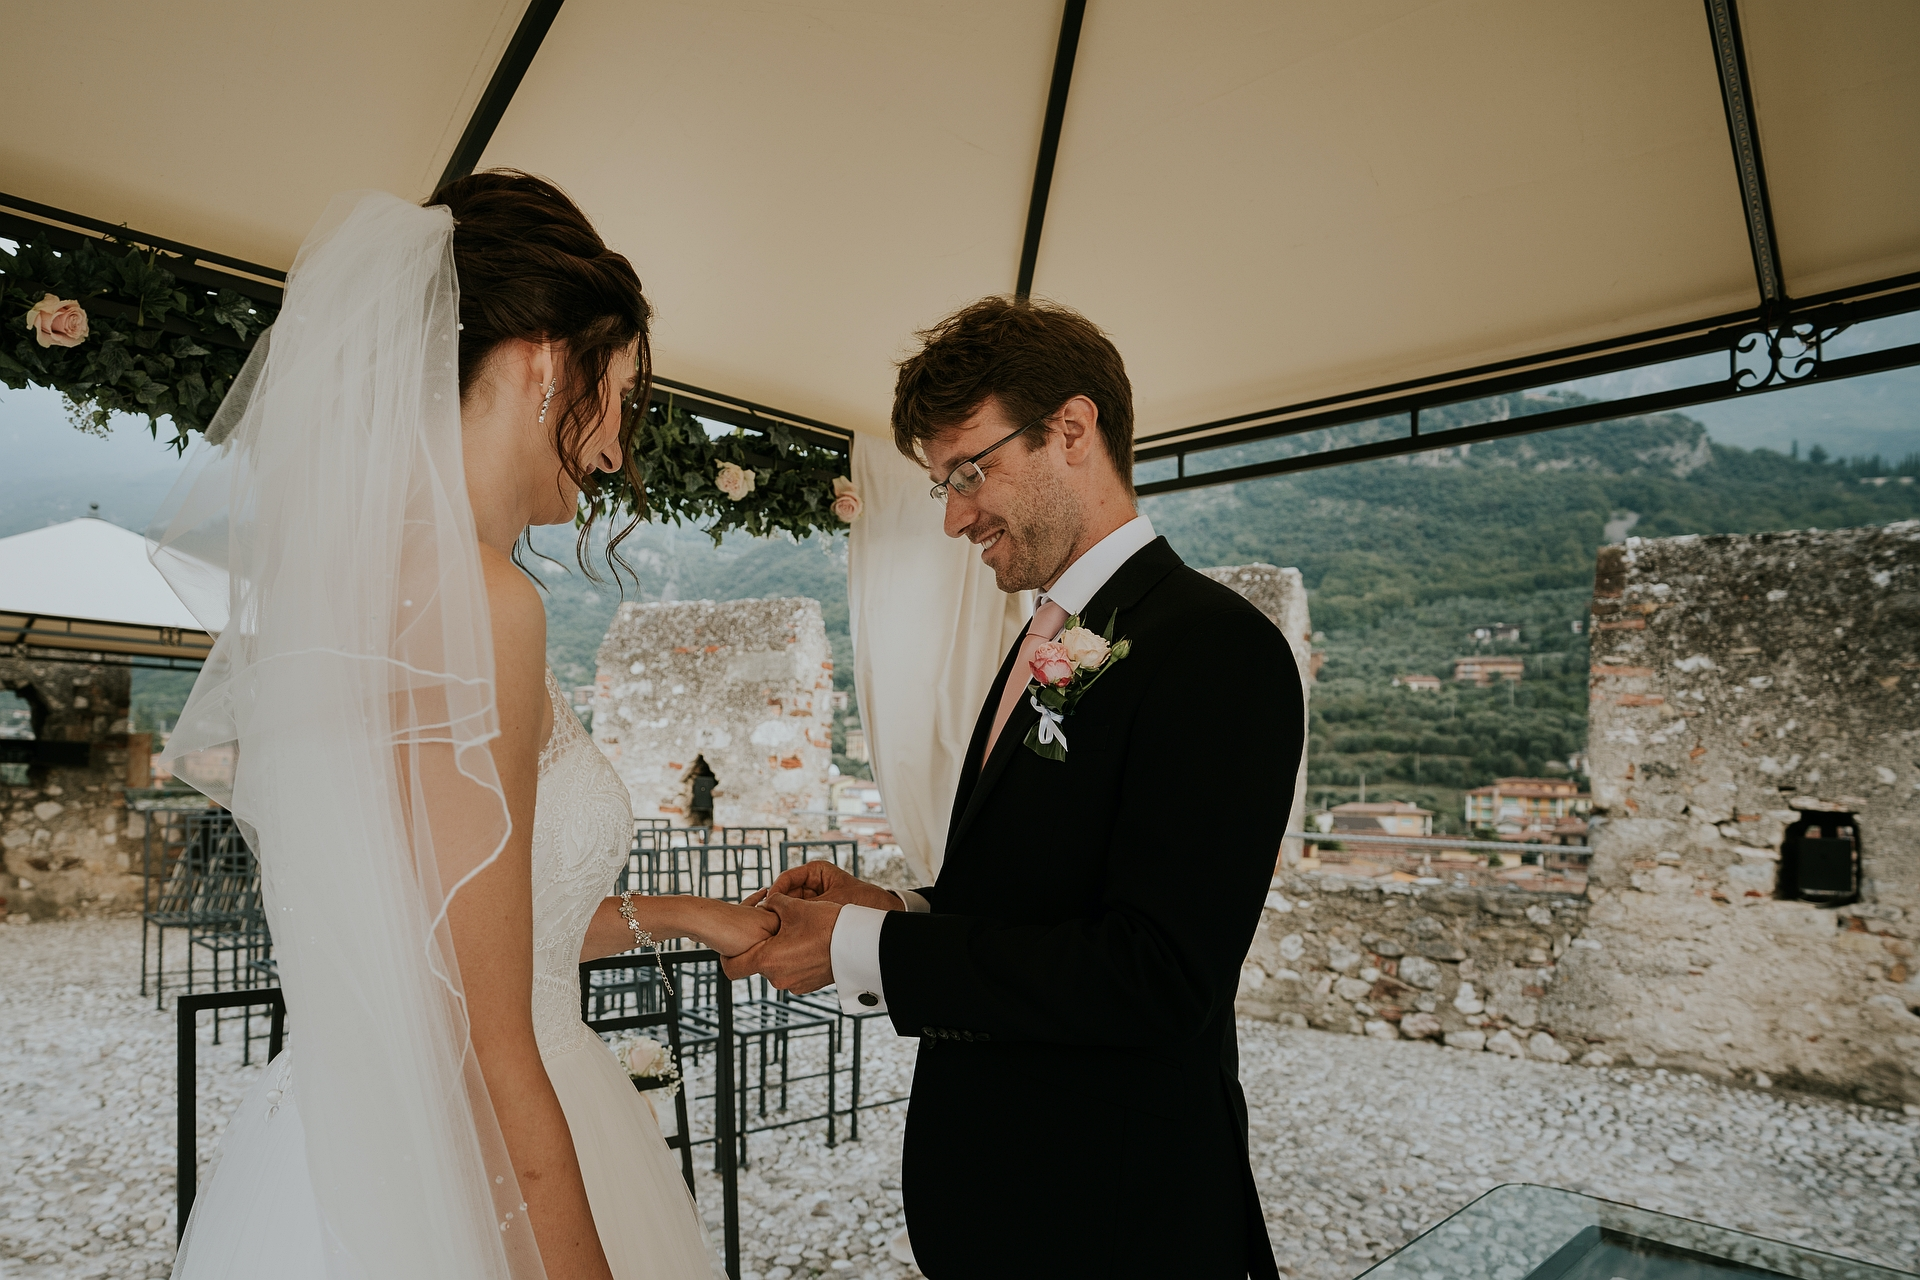 Terrazza Rivellino, Castle - Italy Elopement Ceremony Pictures | The exchange of rings